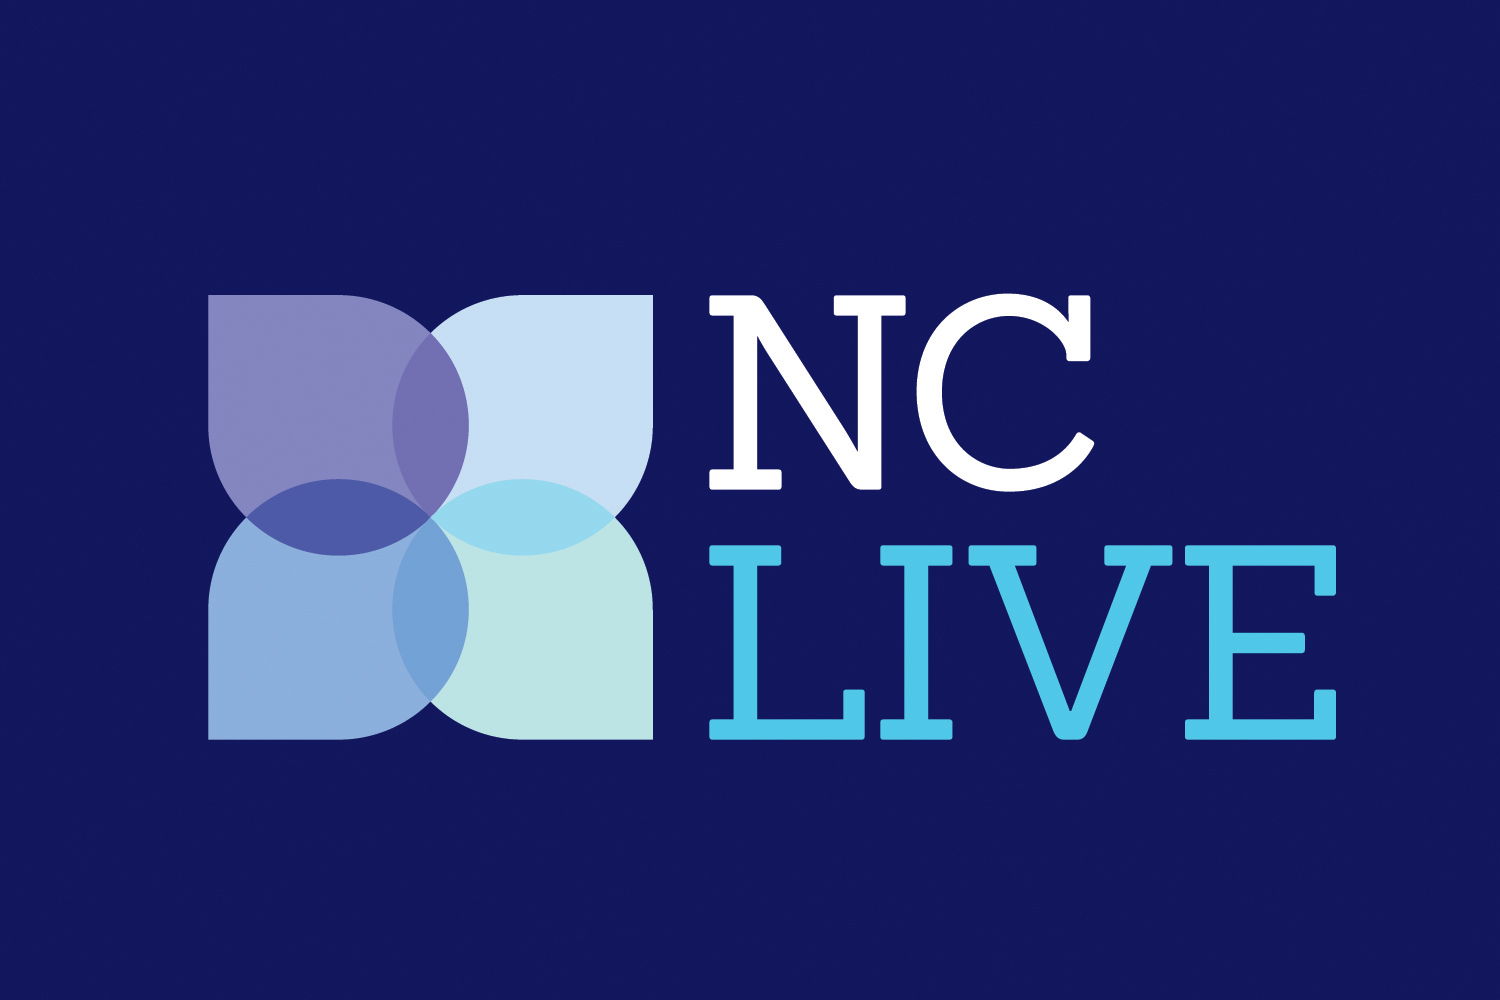 Hyperlinked NCLIVE logo